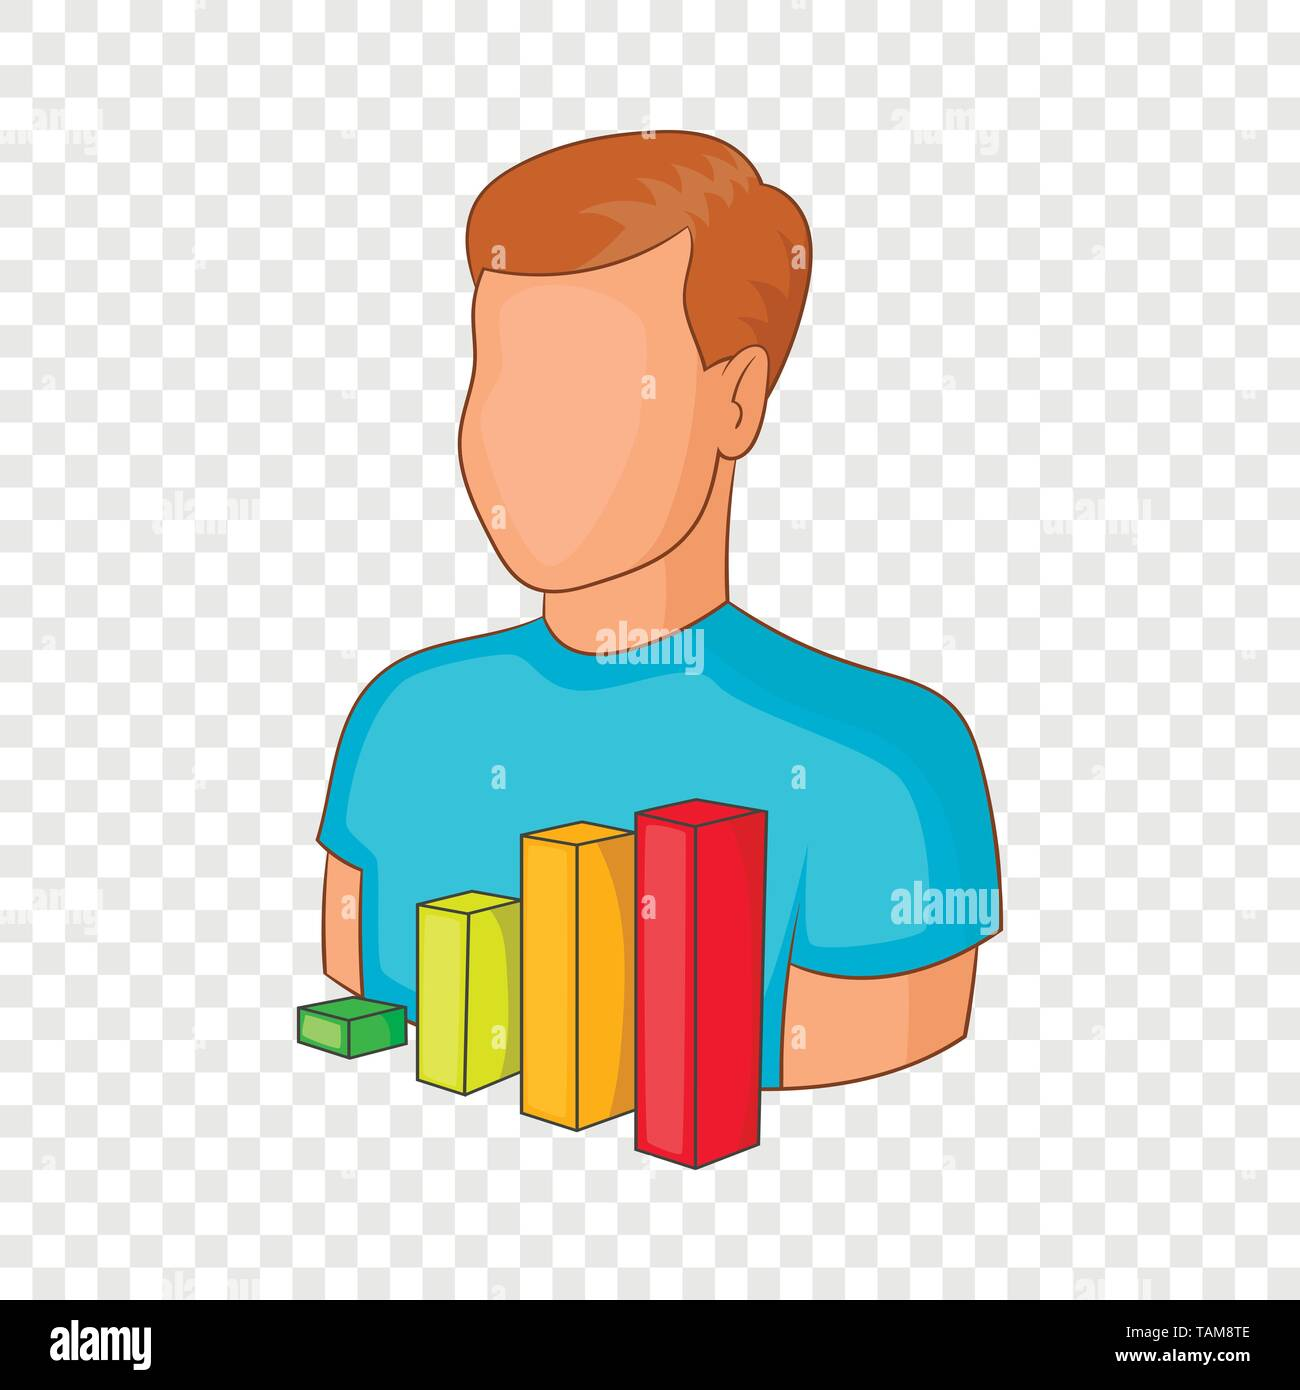 Manager vacancy icon, cartoon style - Stock Image